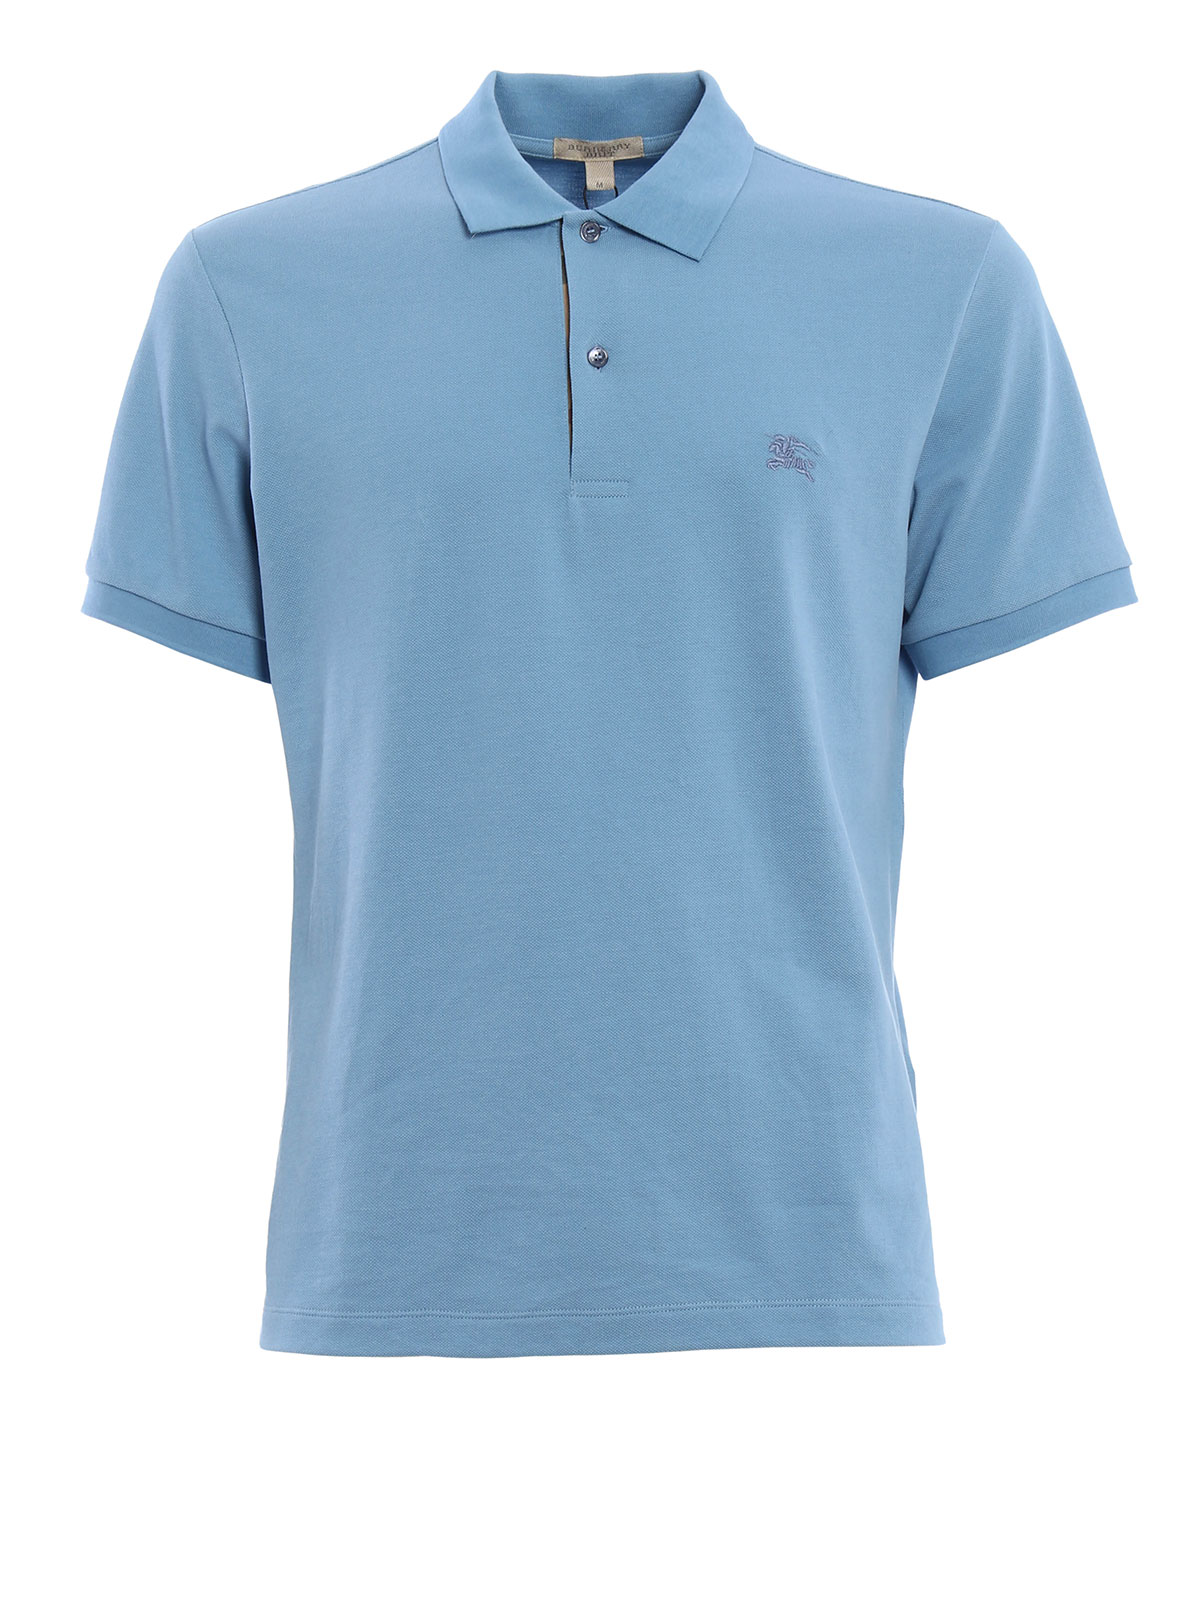 Cotton Pique Polo By Burberry Polo Shirts Ikrix